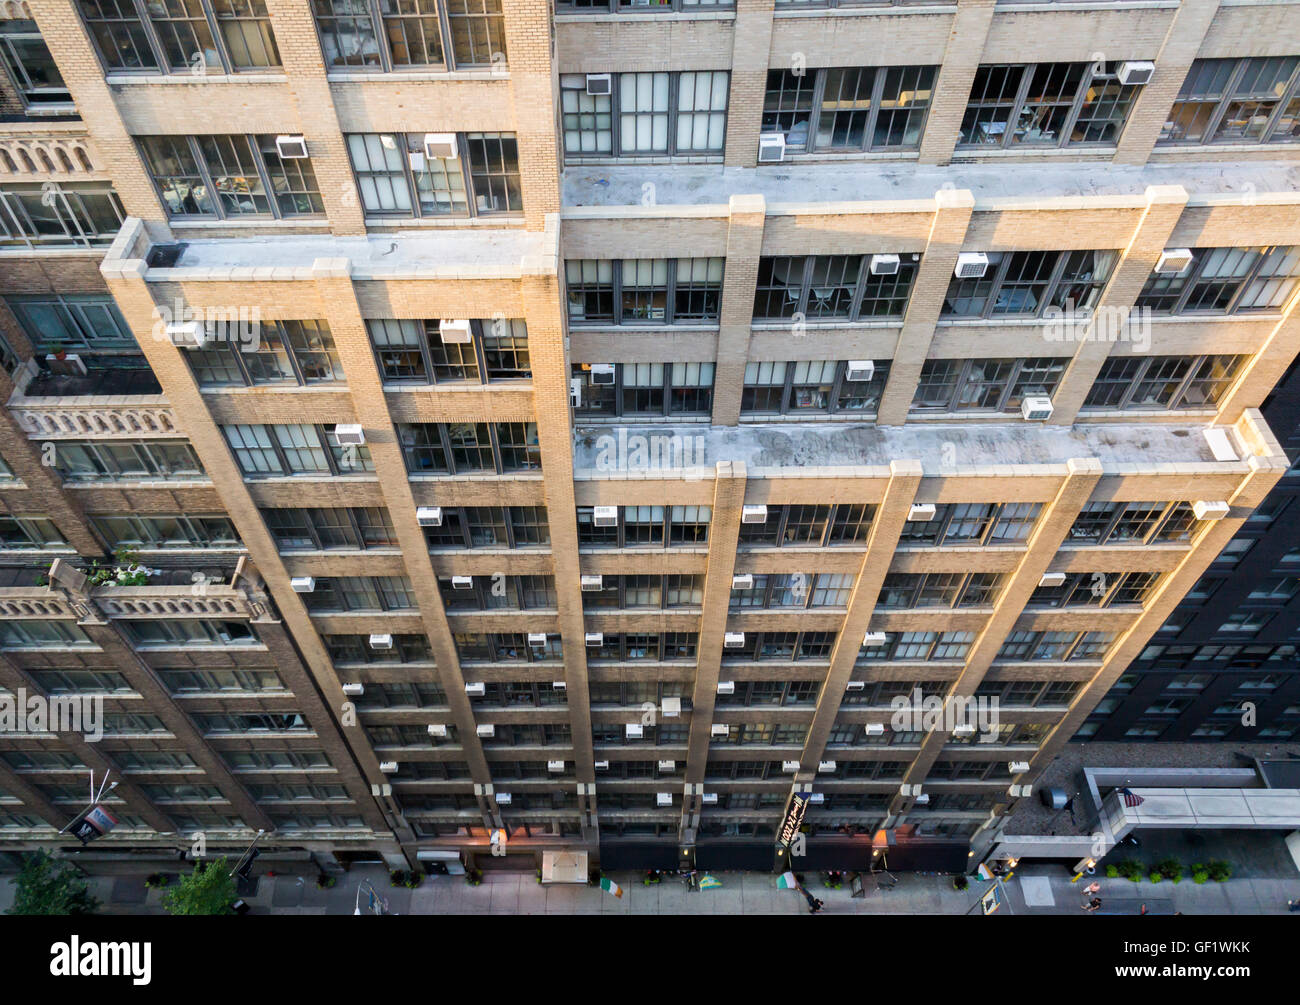 Air conditioners sprout from windows in an office building in New York on Thursday, July 21, 2016. The city has - Stock Image